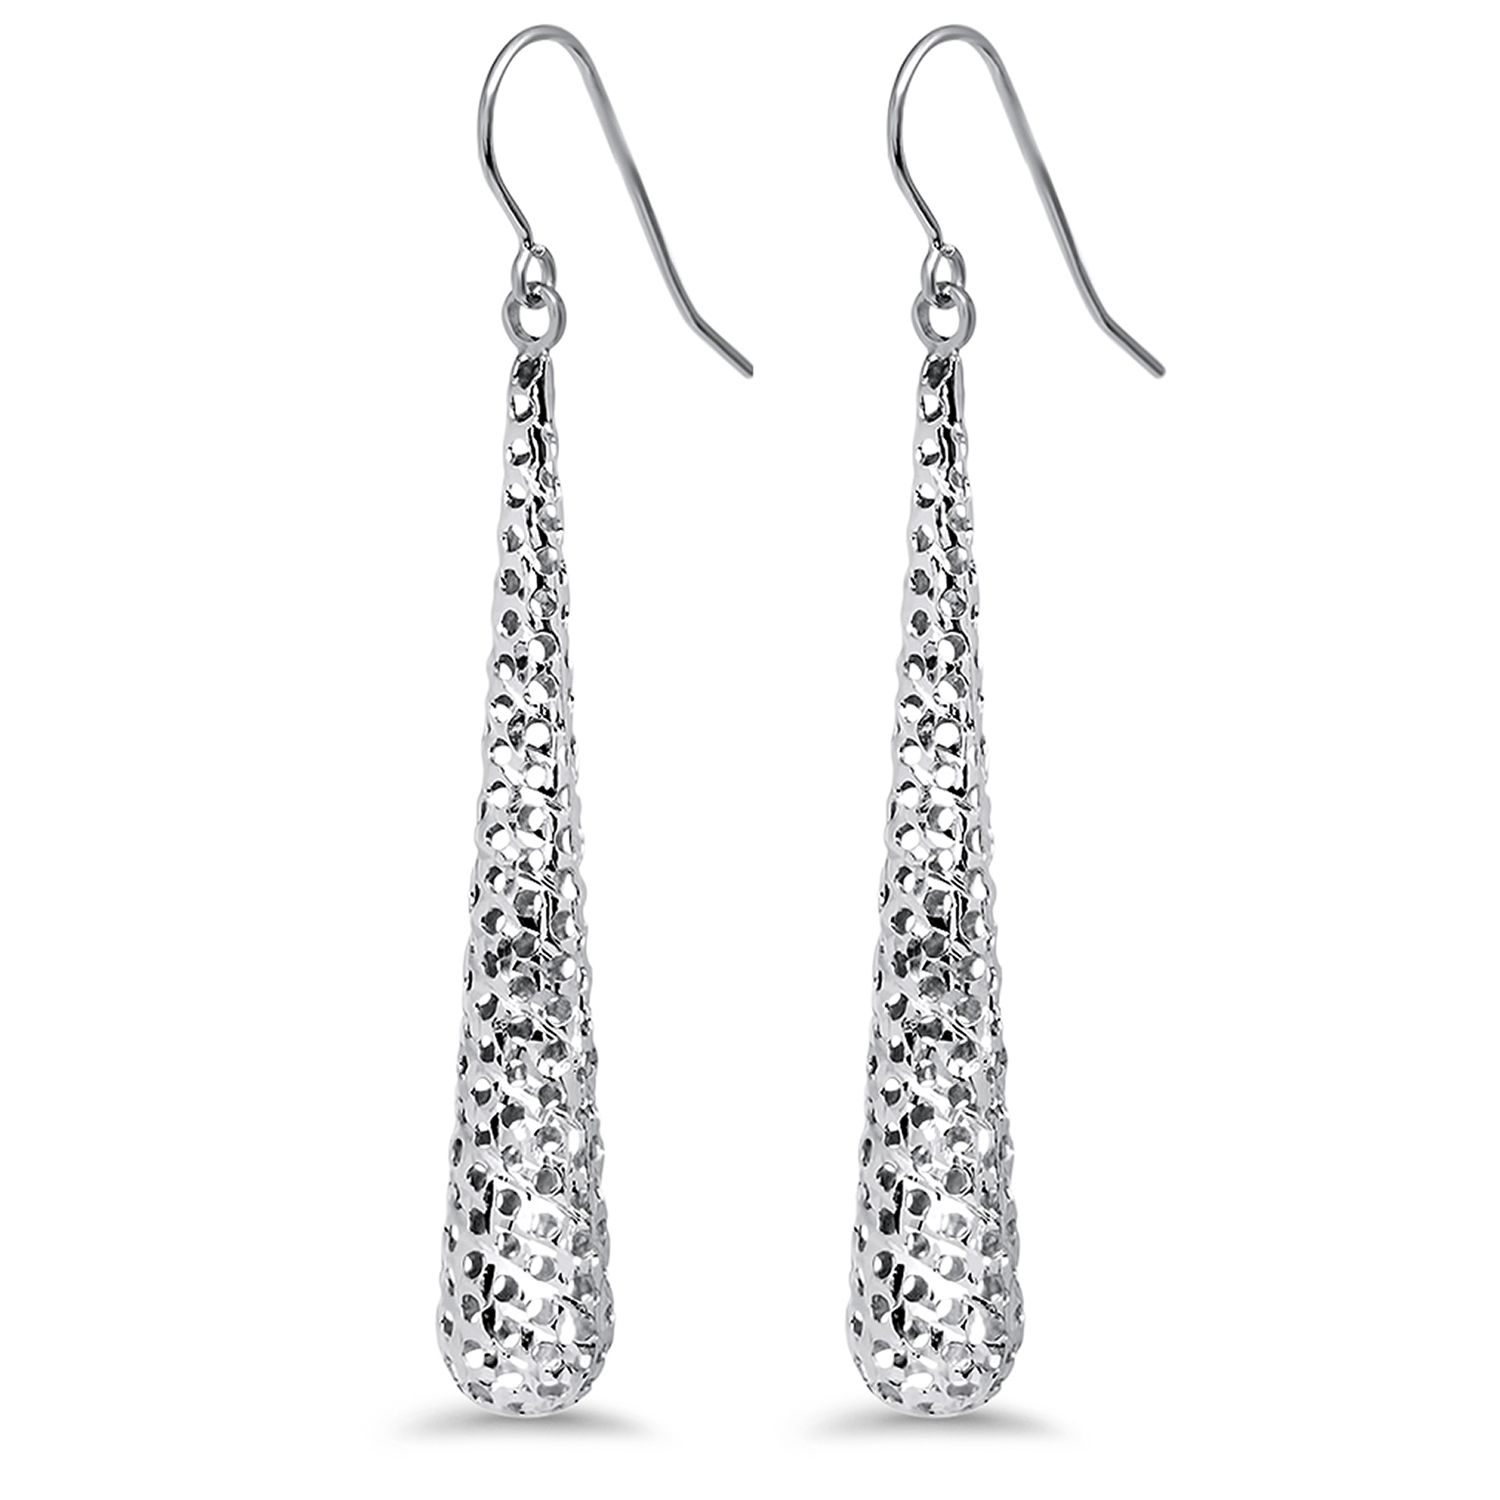 14k White Gold Textured Dangle Earrings